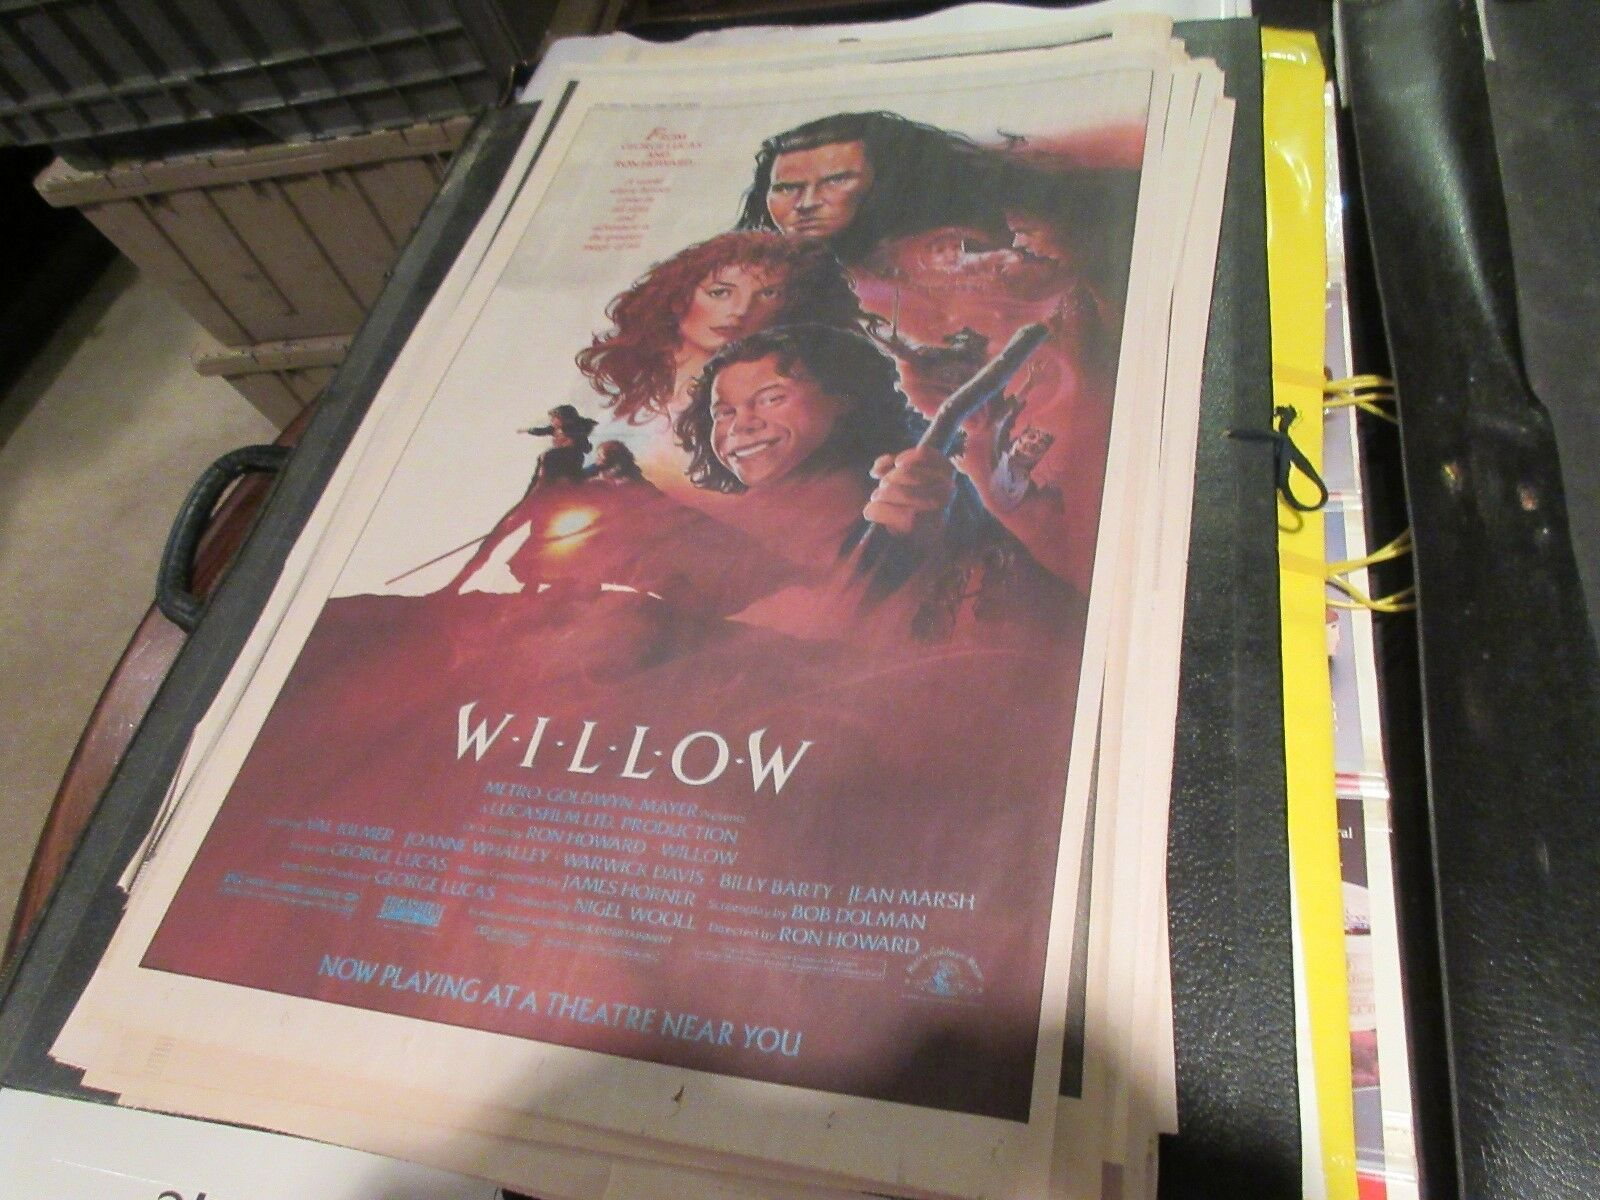 Willow , USA Today , Newspaper Clipping / Poster , 5/20